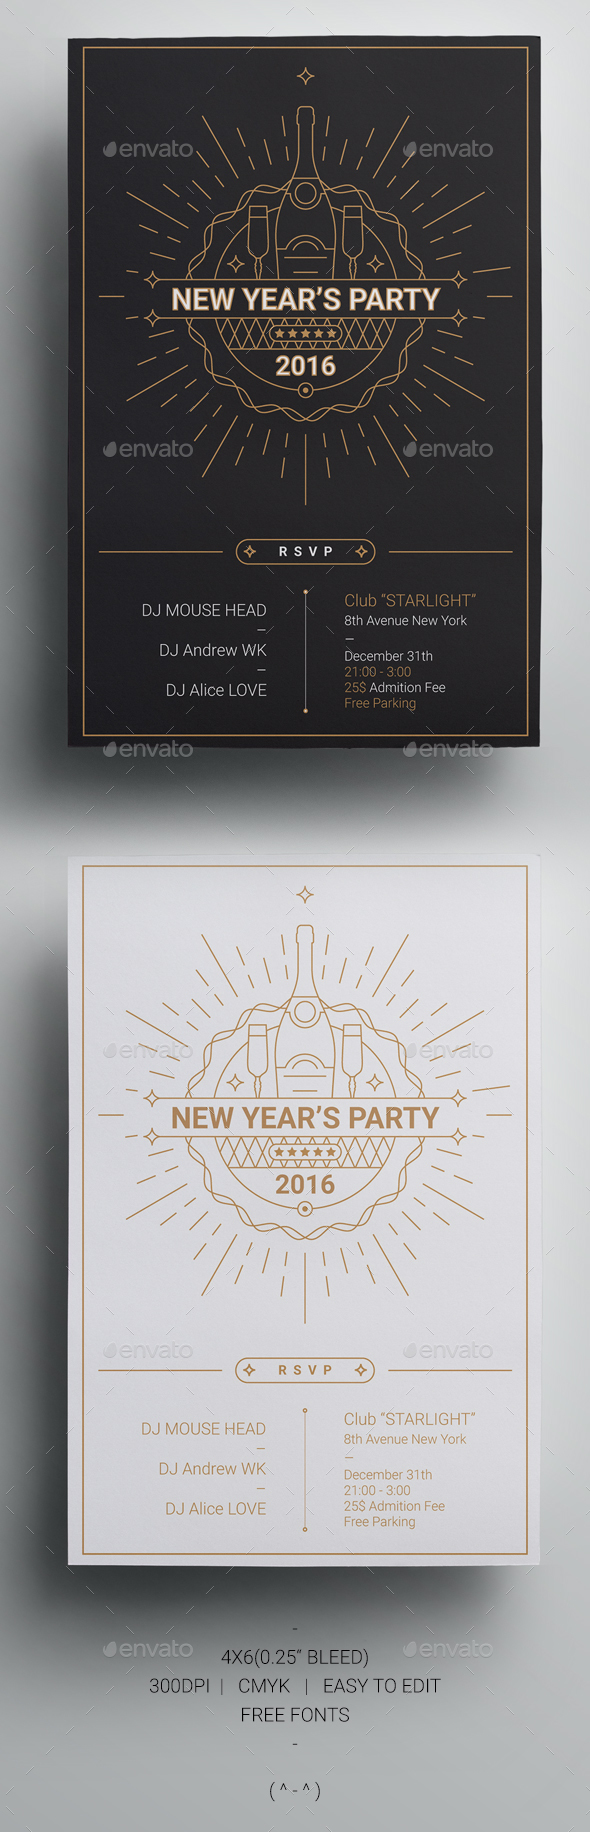 2016 New Year's Party Flyer Template - Holidays Events